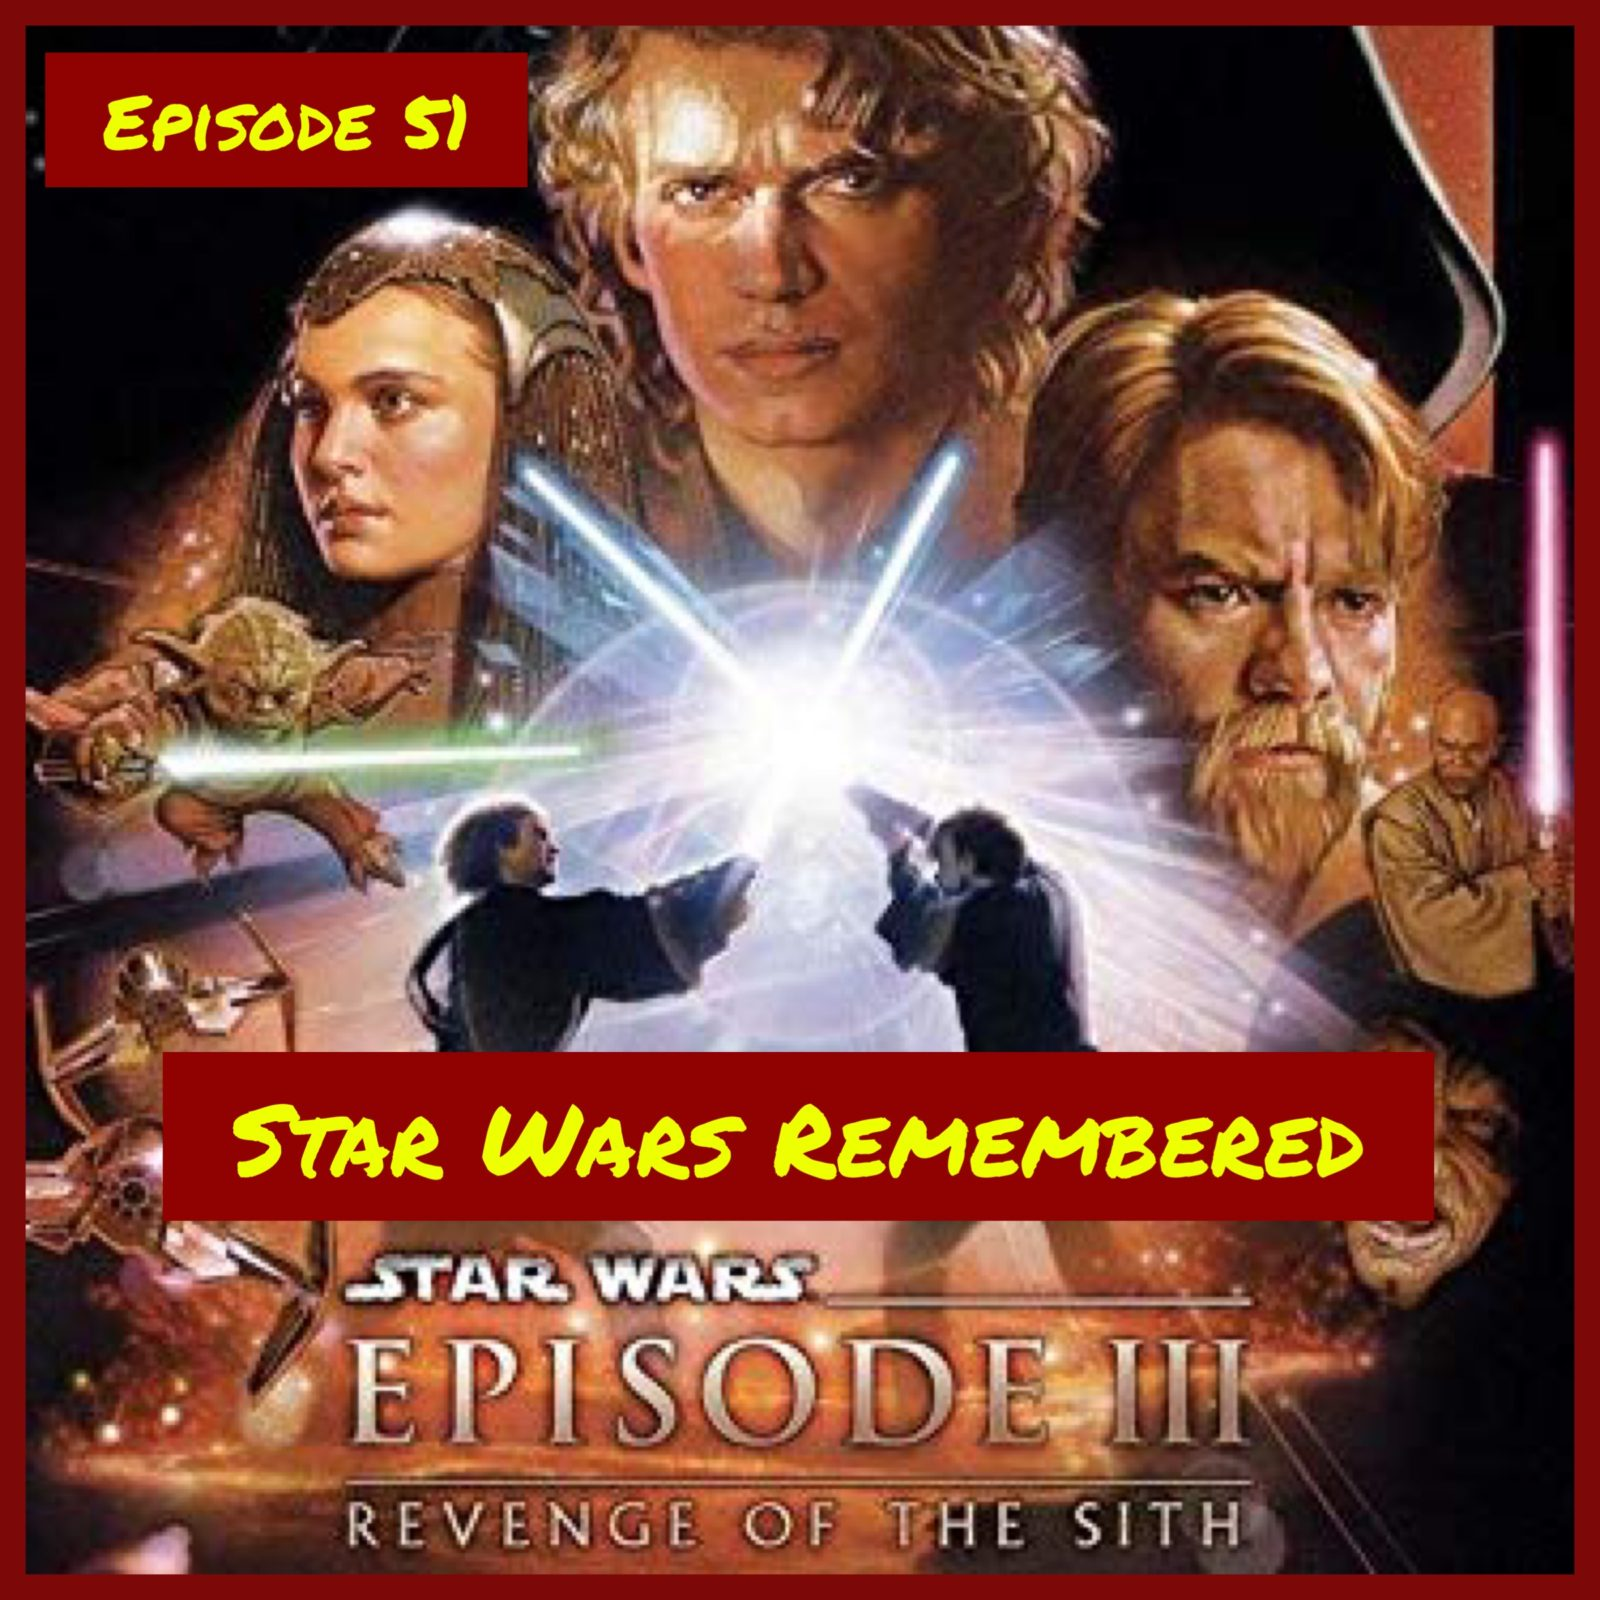 Star Wars Remembered = Revenge of the Sith